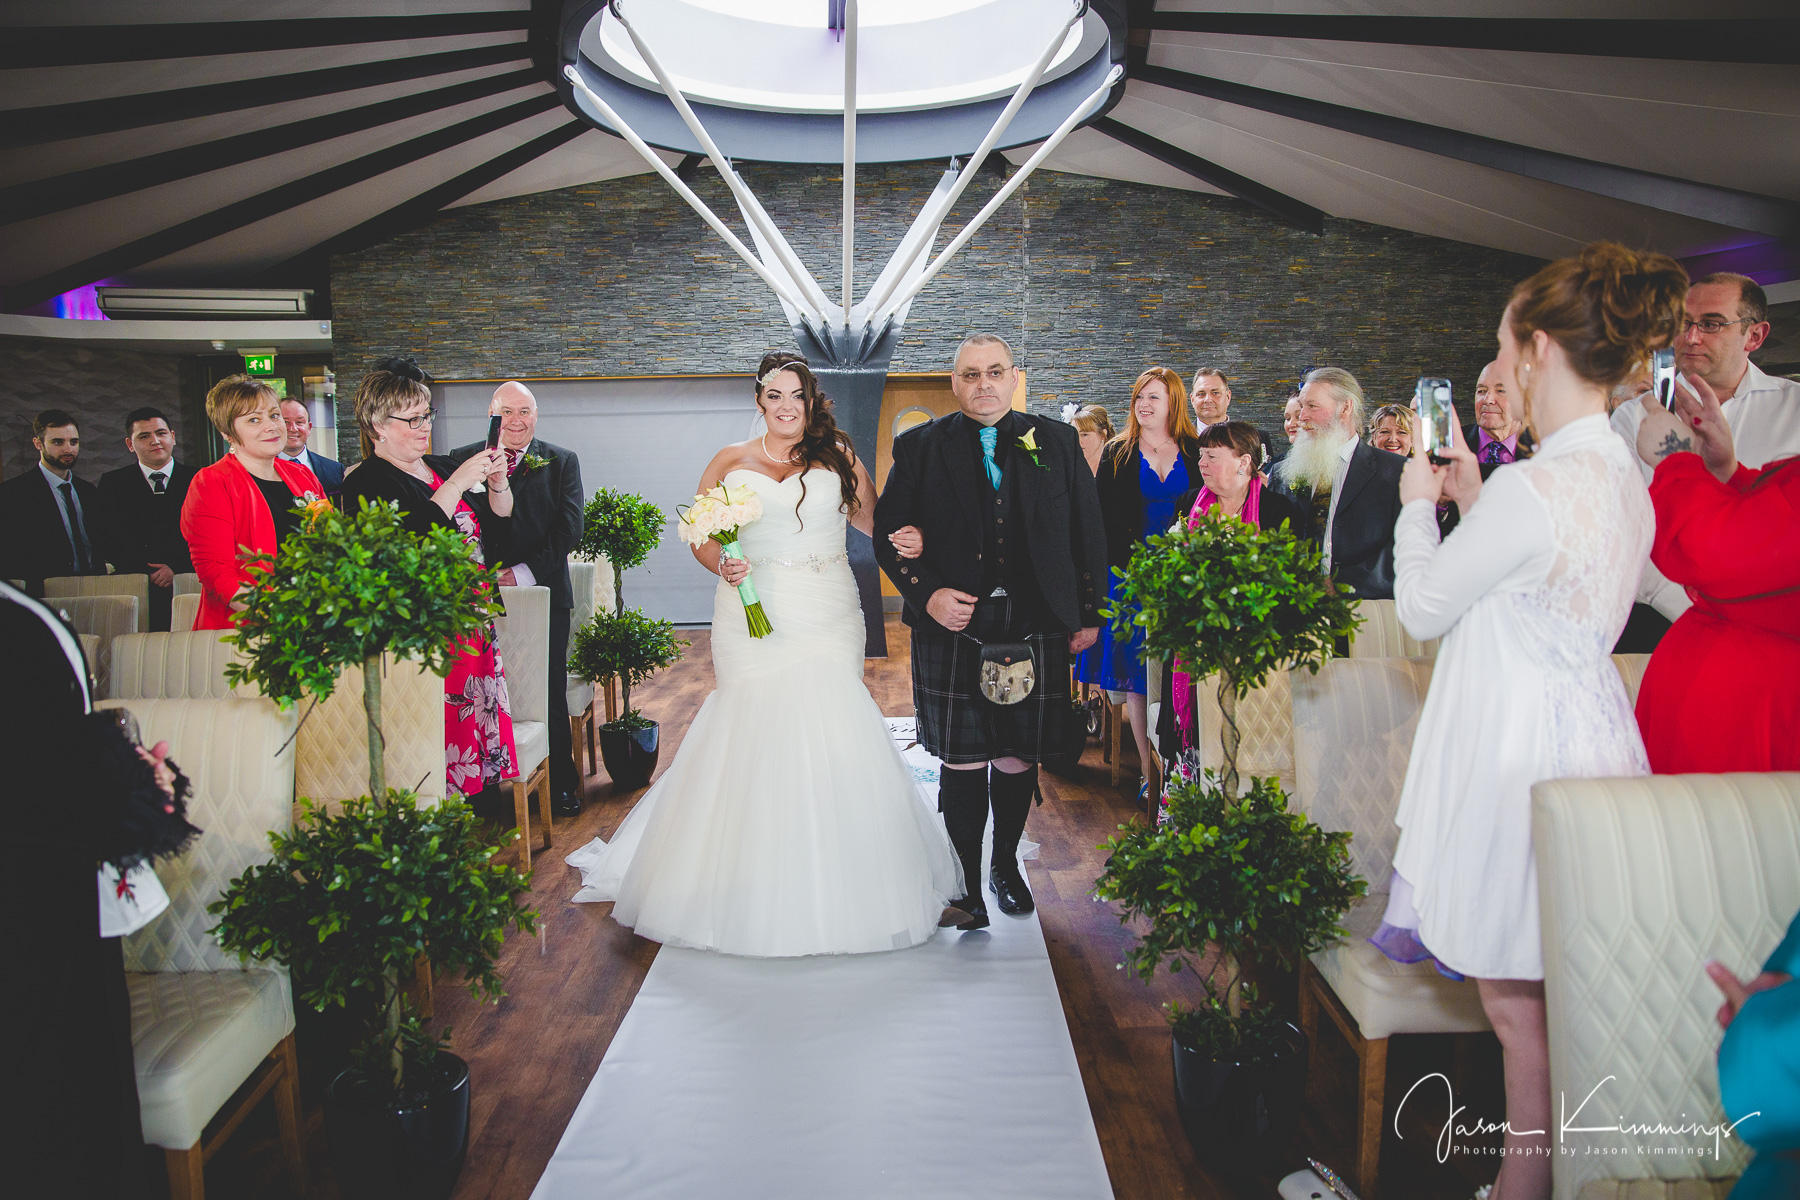 vu-wedding-photography-bathgate-10.jpg